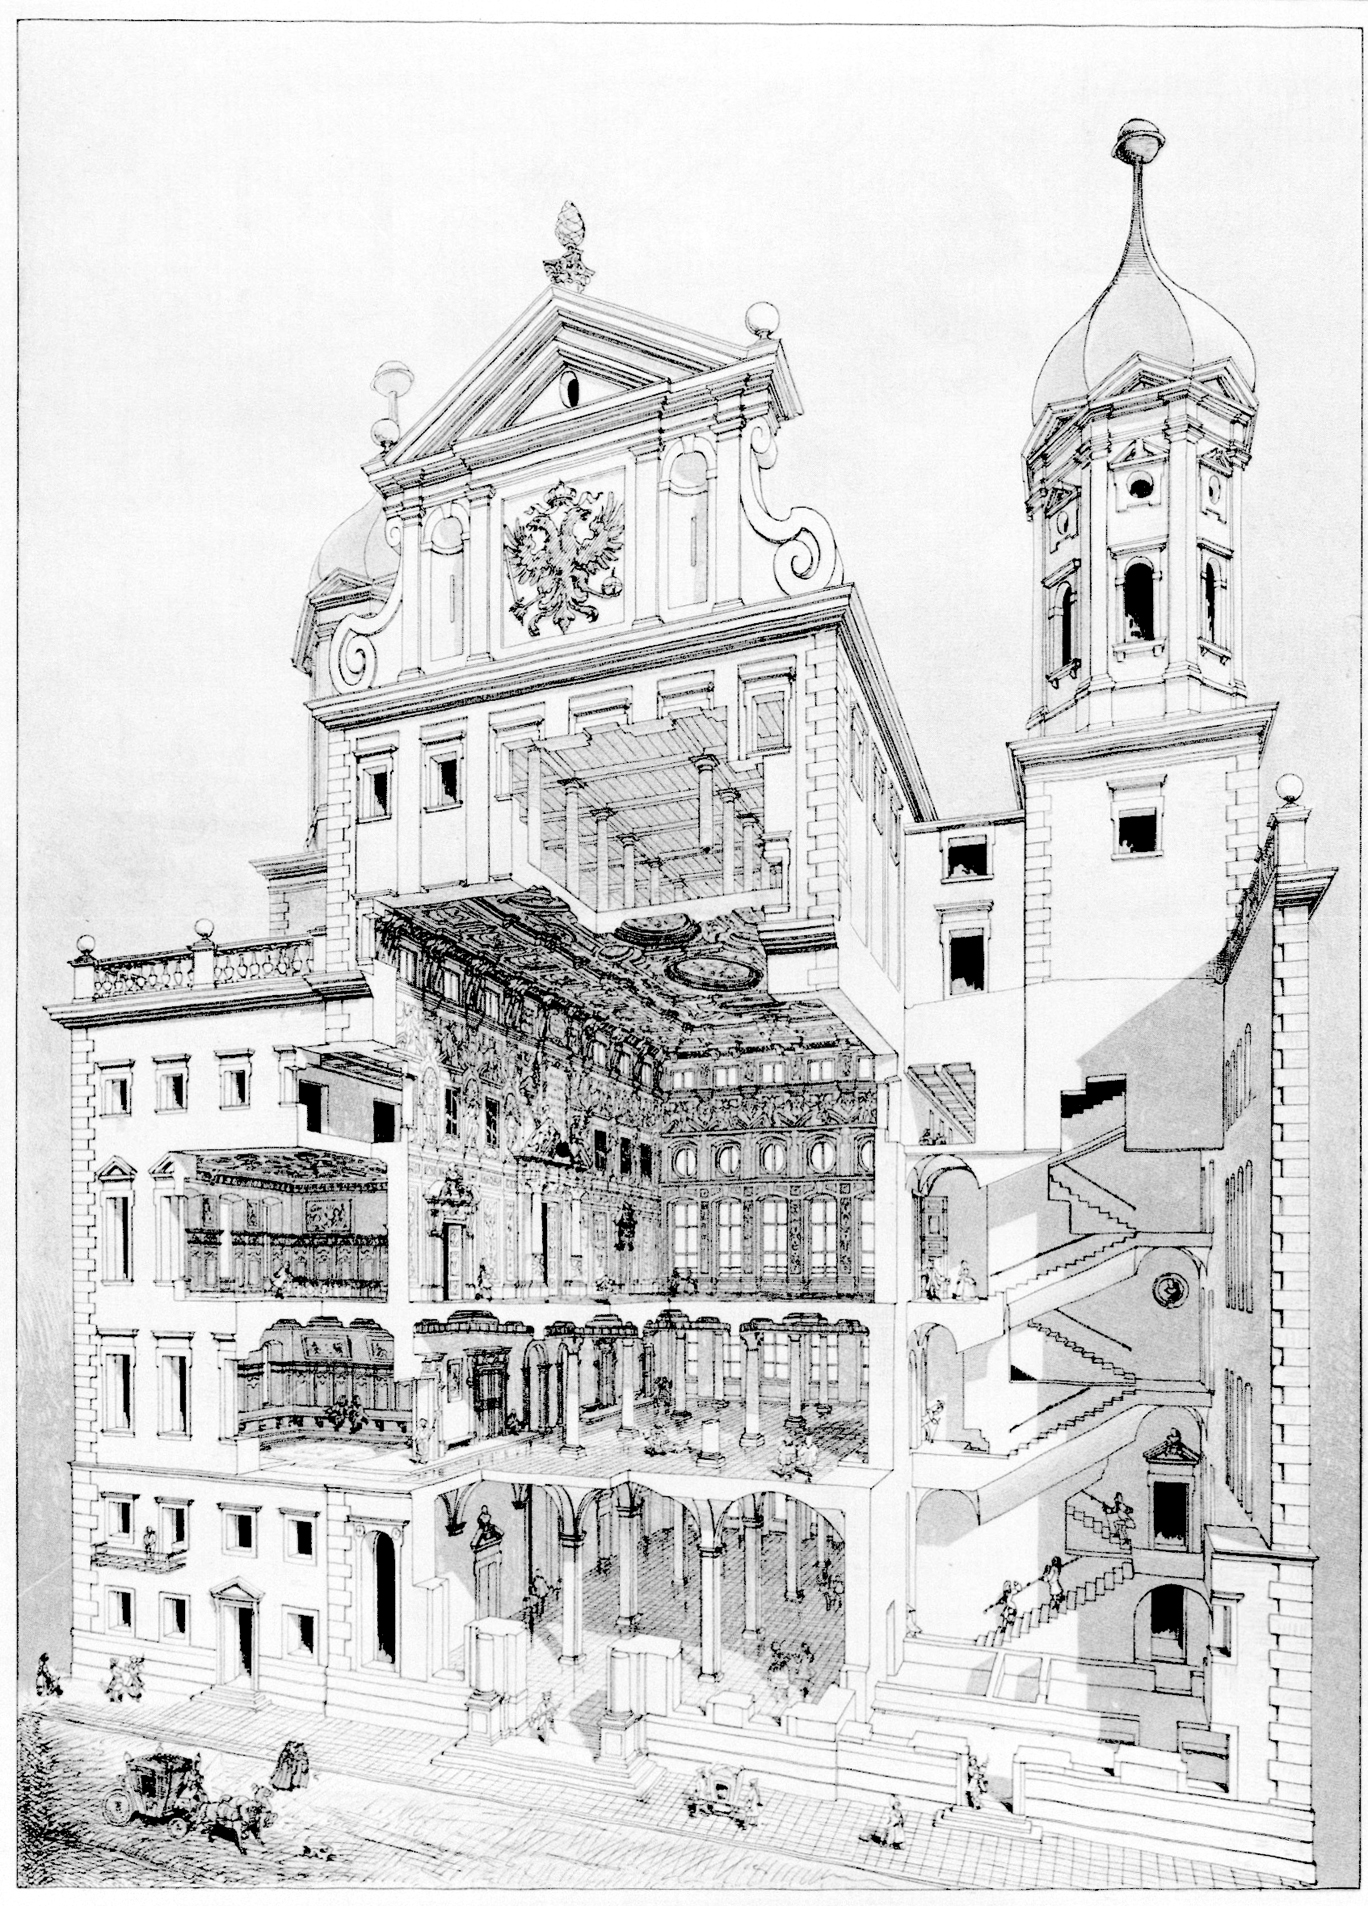 Perspective drawing of Augsburg city hall by Theodor Fischer, 1886